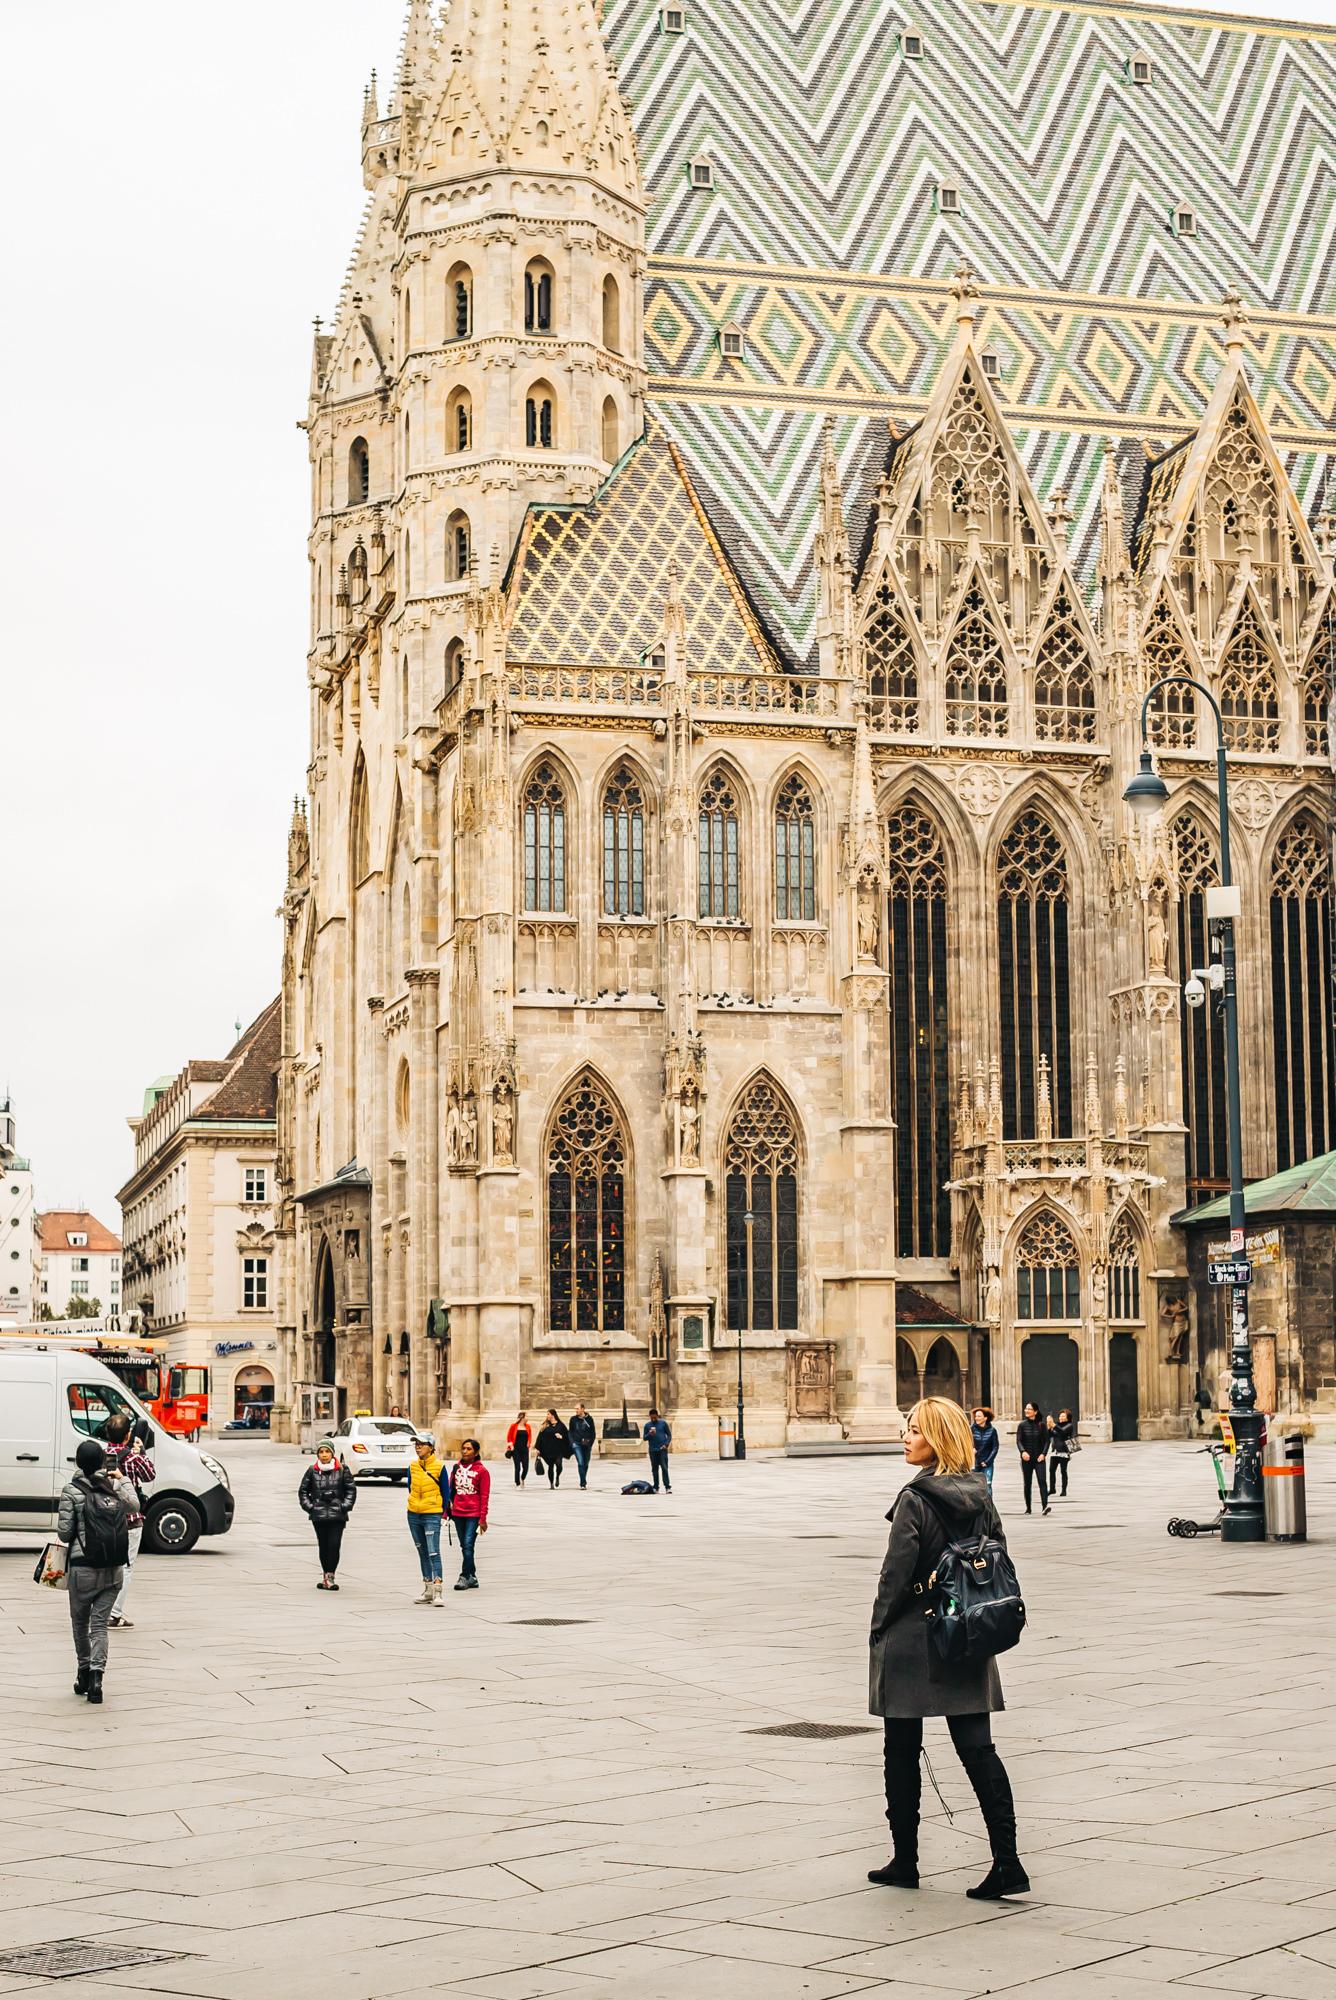 The iconic St. Stephen's Cathedral in Vienna